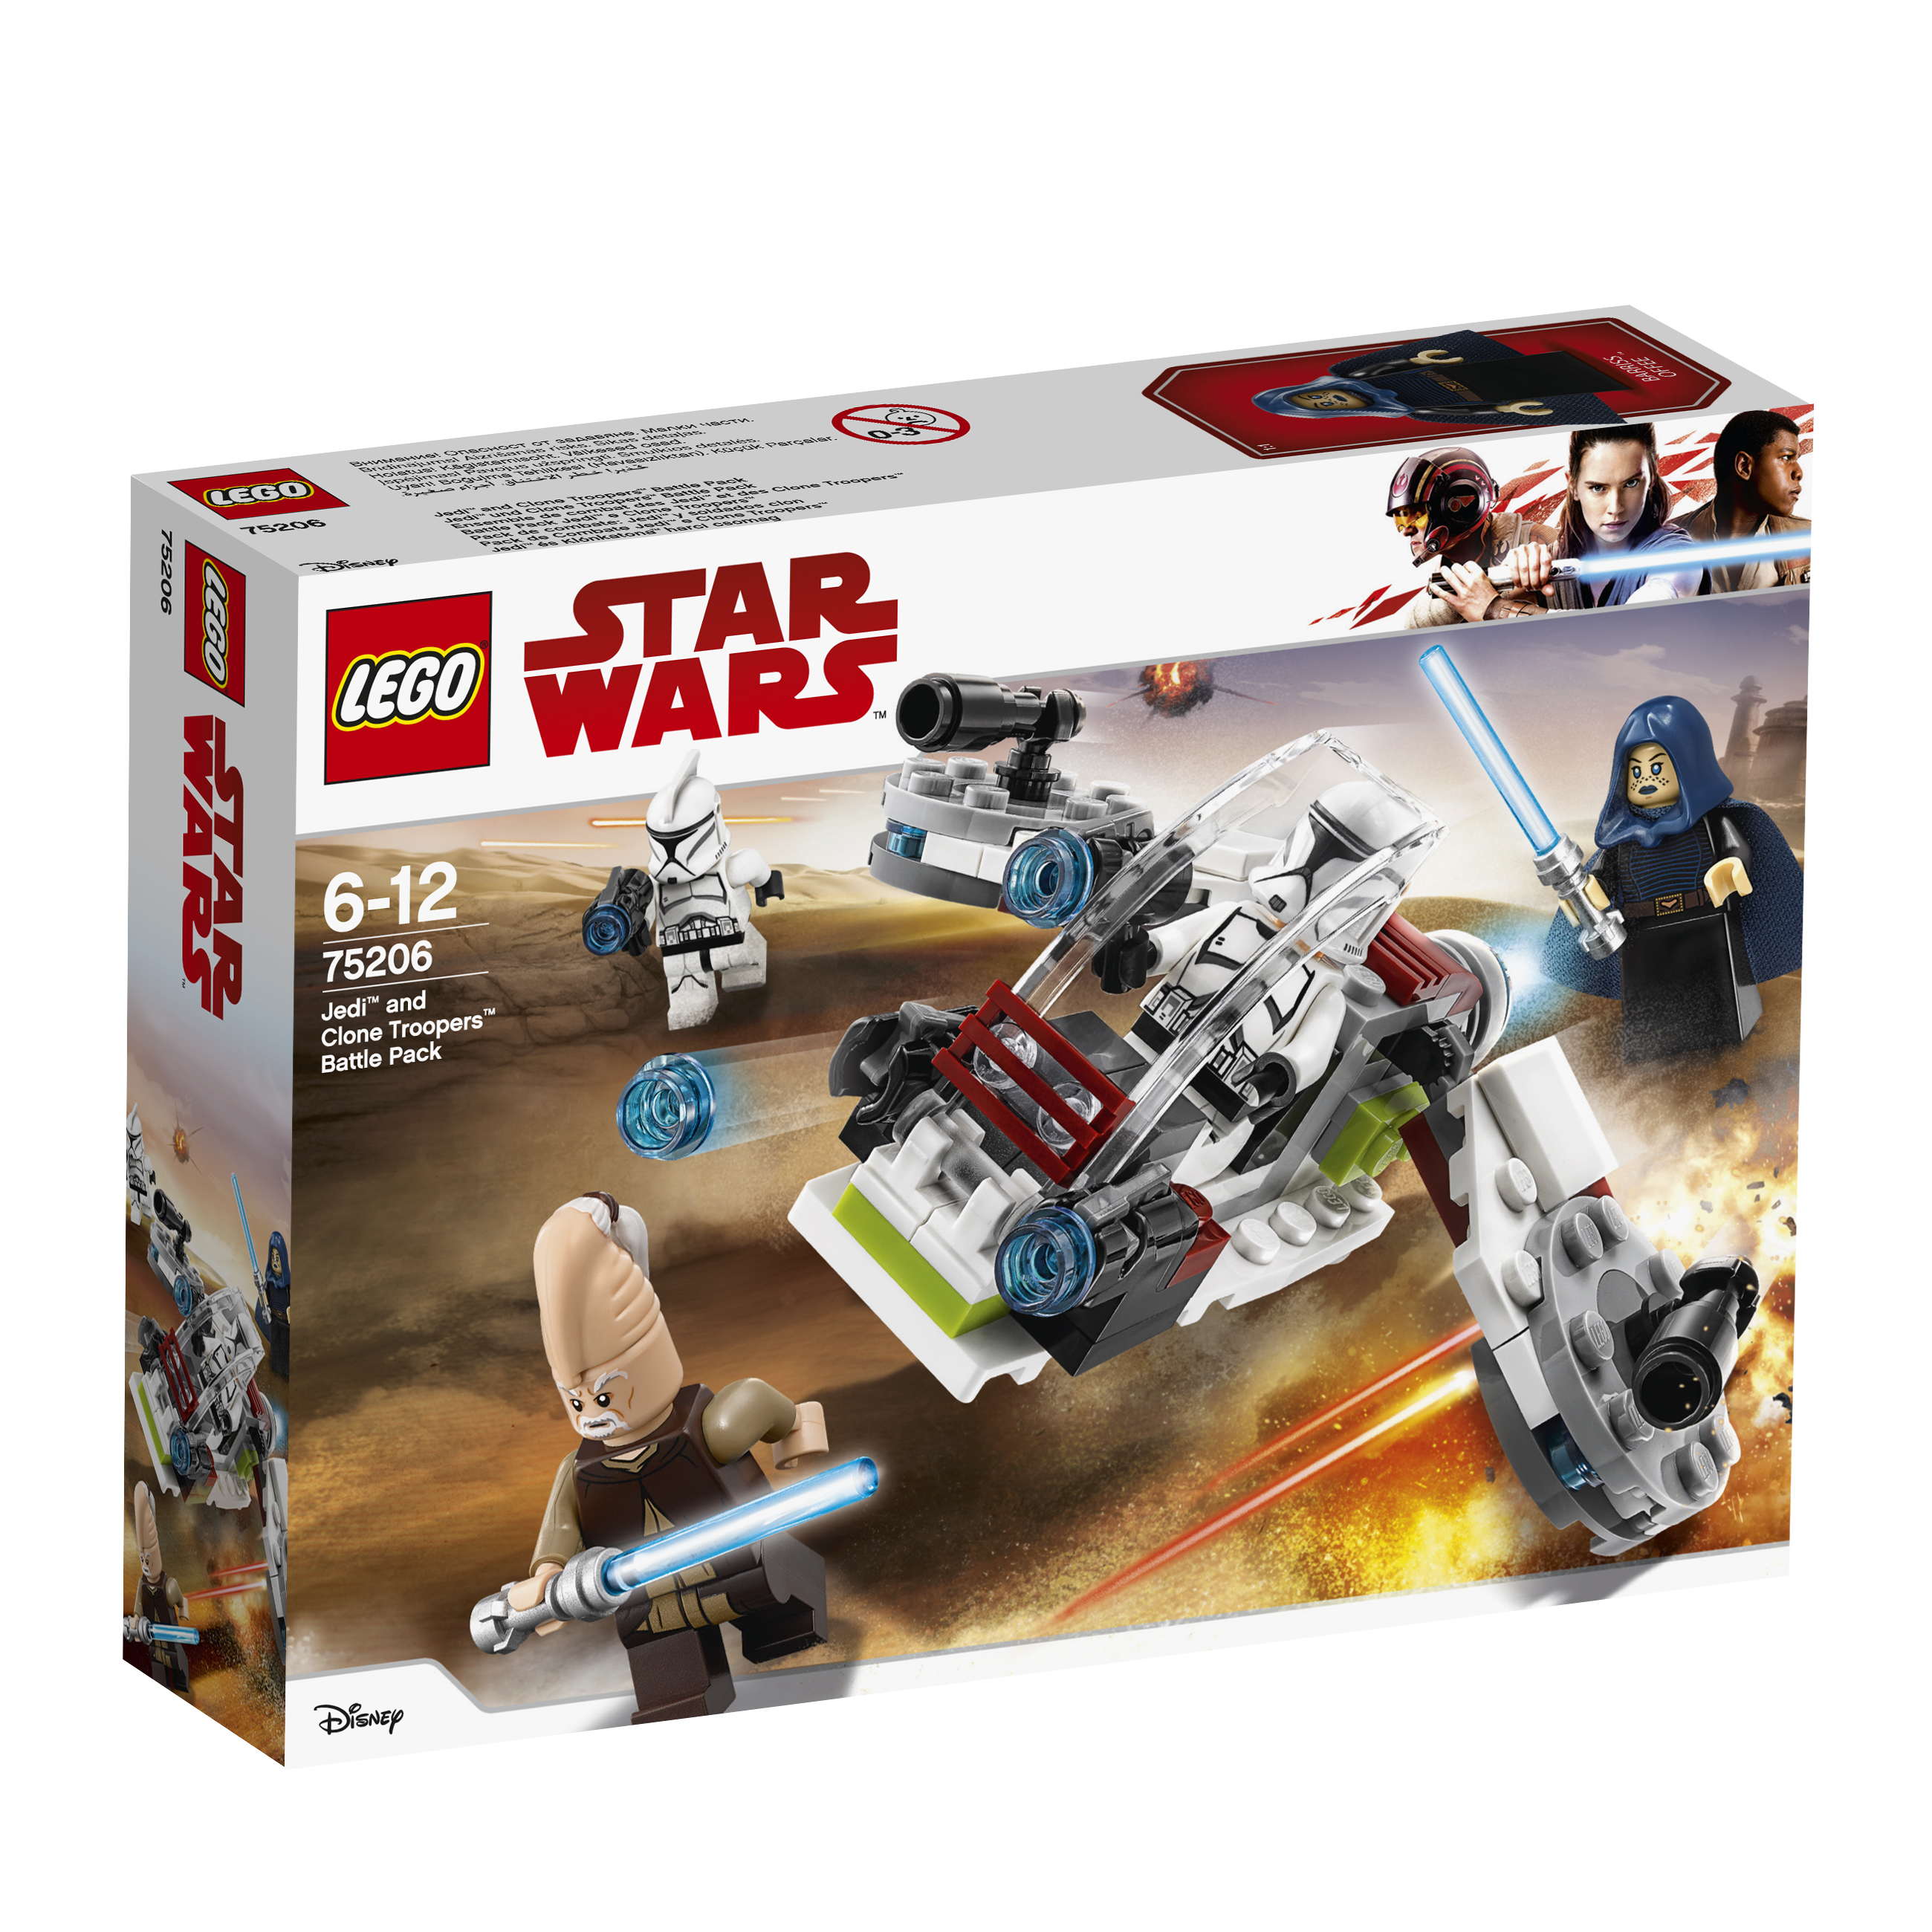 Star Wars LEGO Конструктор LEGO Star Wars 75206 Боевой набор джедаев и клонов-пехотинцев 05065 genuine star wars y wing starfighter lepin building blocks bricks educational toys gift compatiable with lego kid gift set